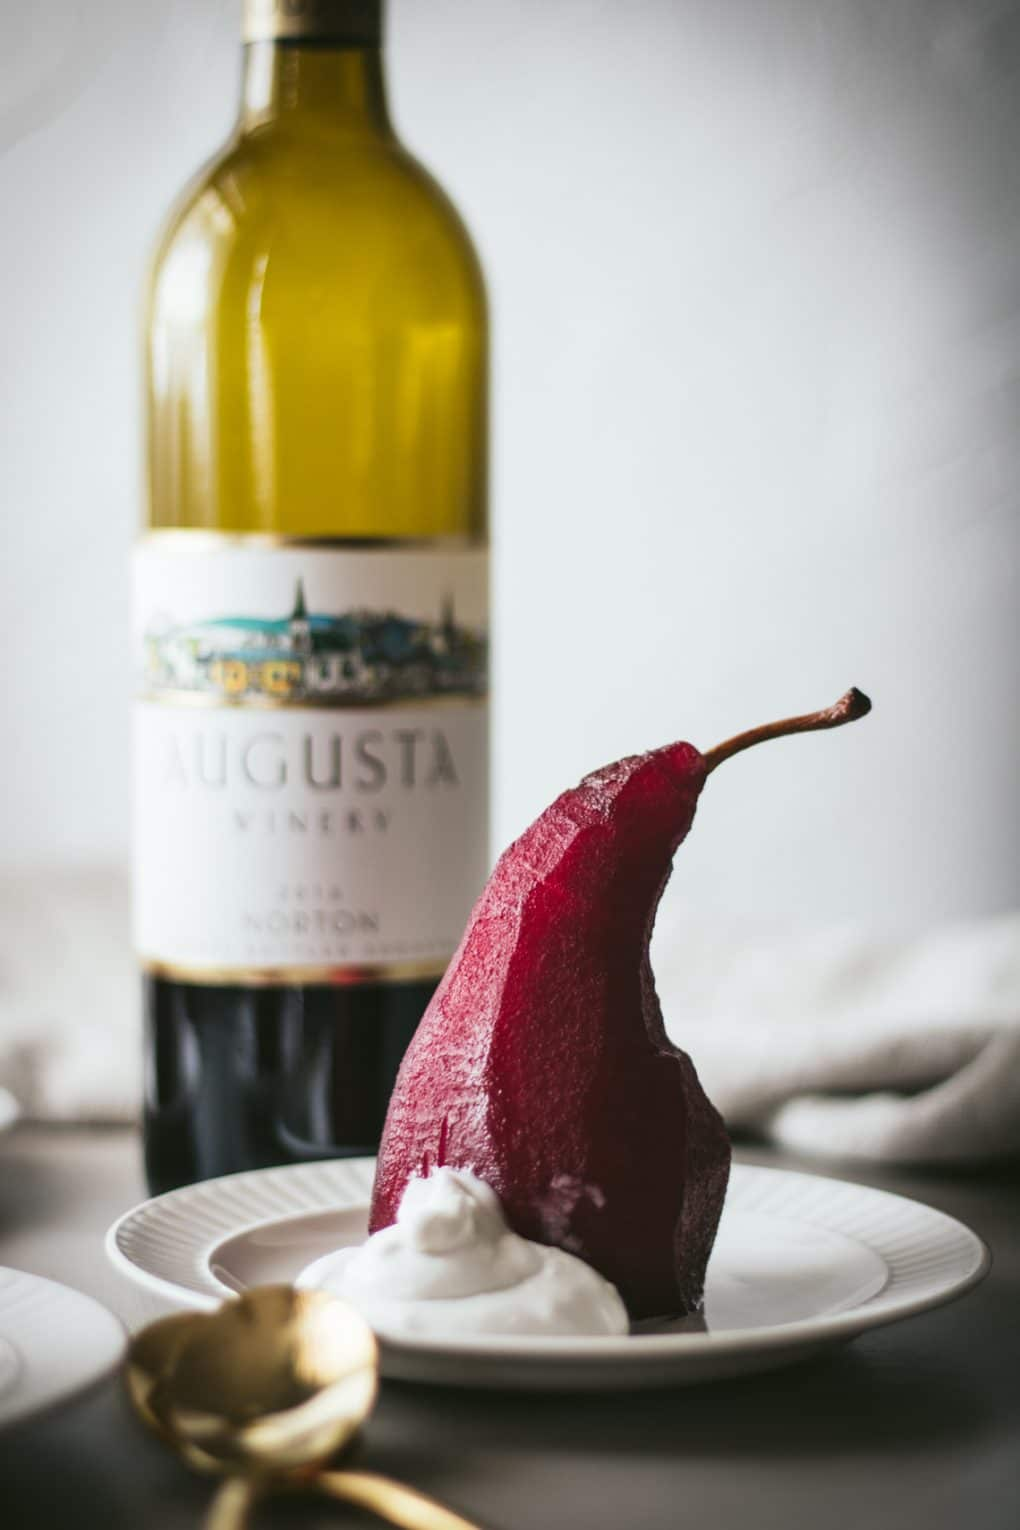 a red wine poached pear on a white plate with a small dollop of coconut cream. There are gold spoons sitting next to the white plate and a bottle of Missouri red wine in the background.